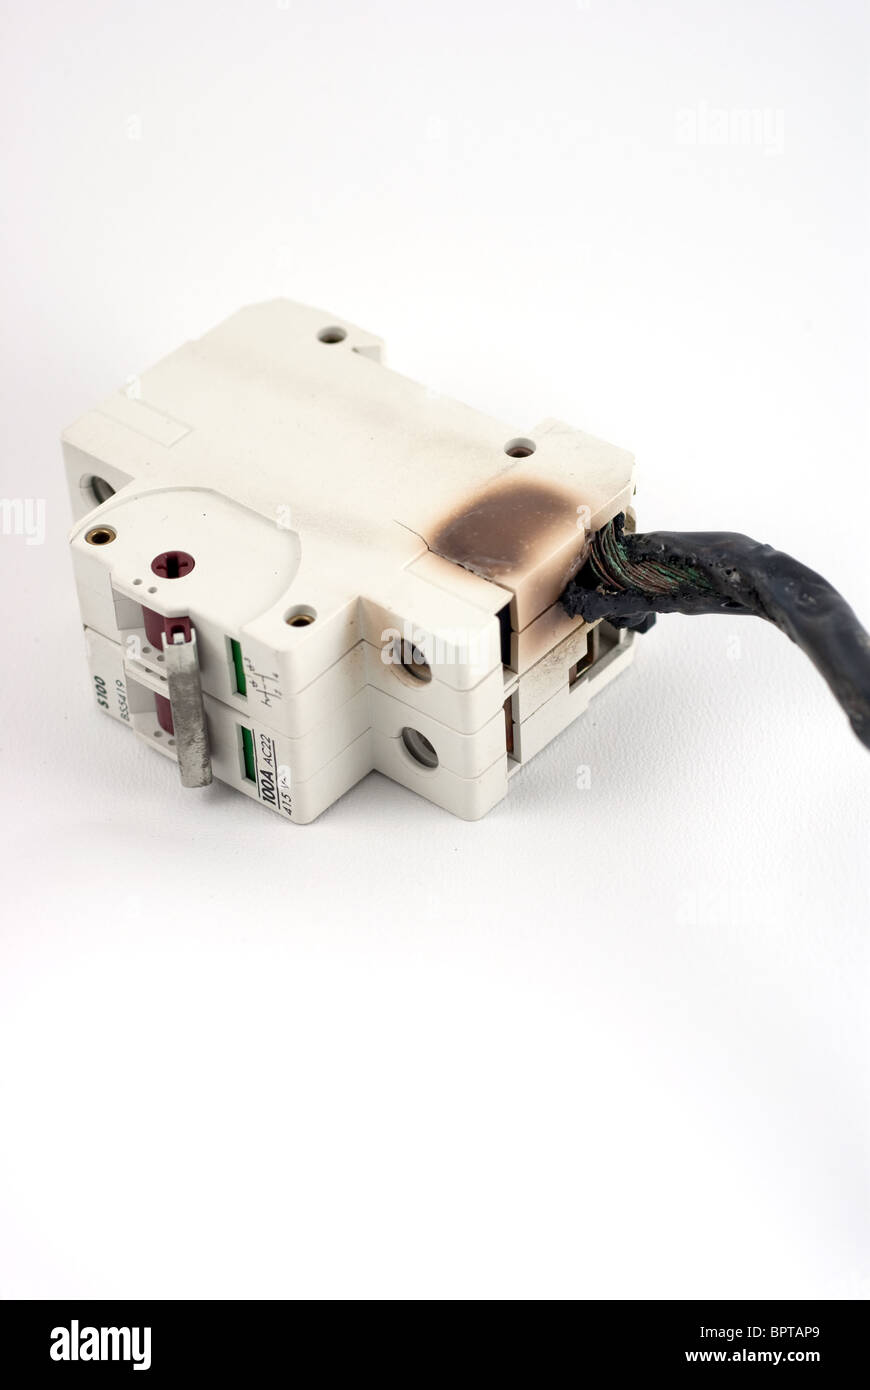 Electrical Fire Hazard Stock Photos Circuit Breaker Kc163 C25 China Main Switch Burnt Image